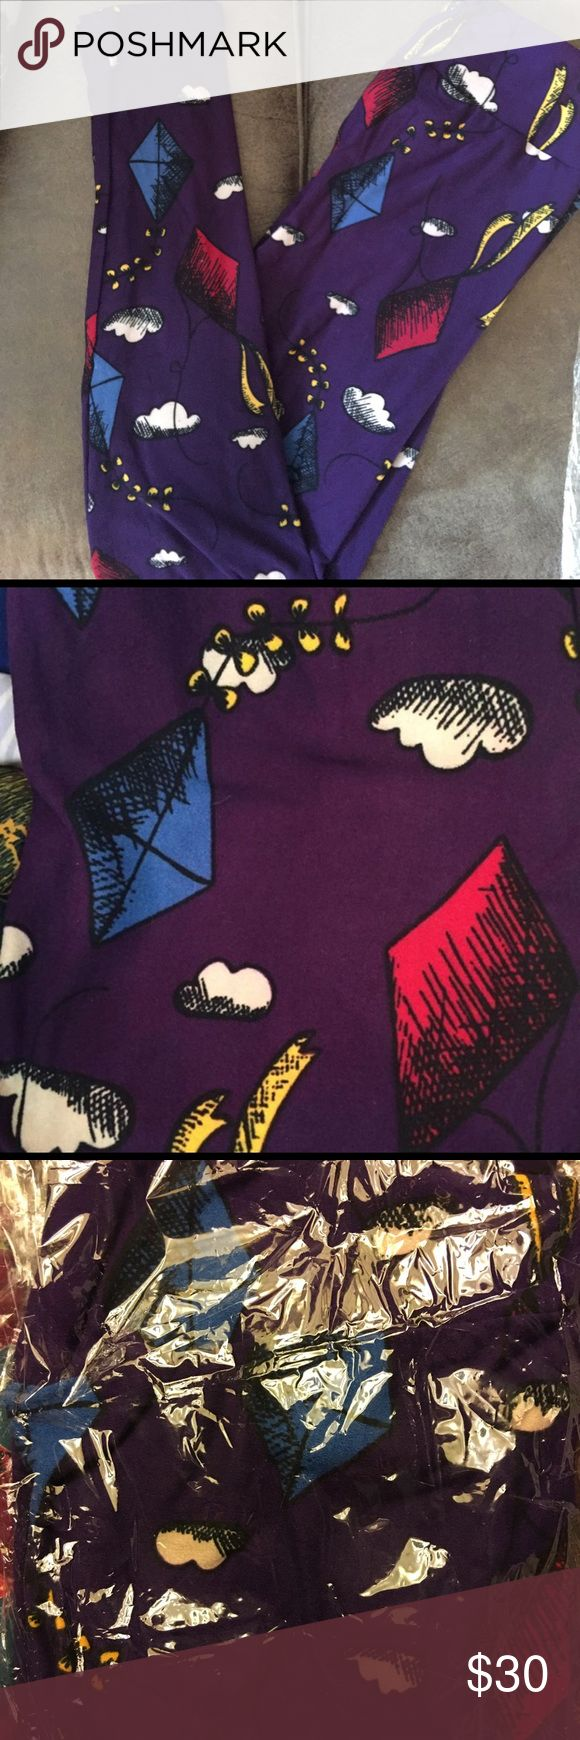 Lularoe OS kite leggings NWT Purple background with kites. Size OS (fits 2-12) NWT. LuLaRoe Pants Leggings